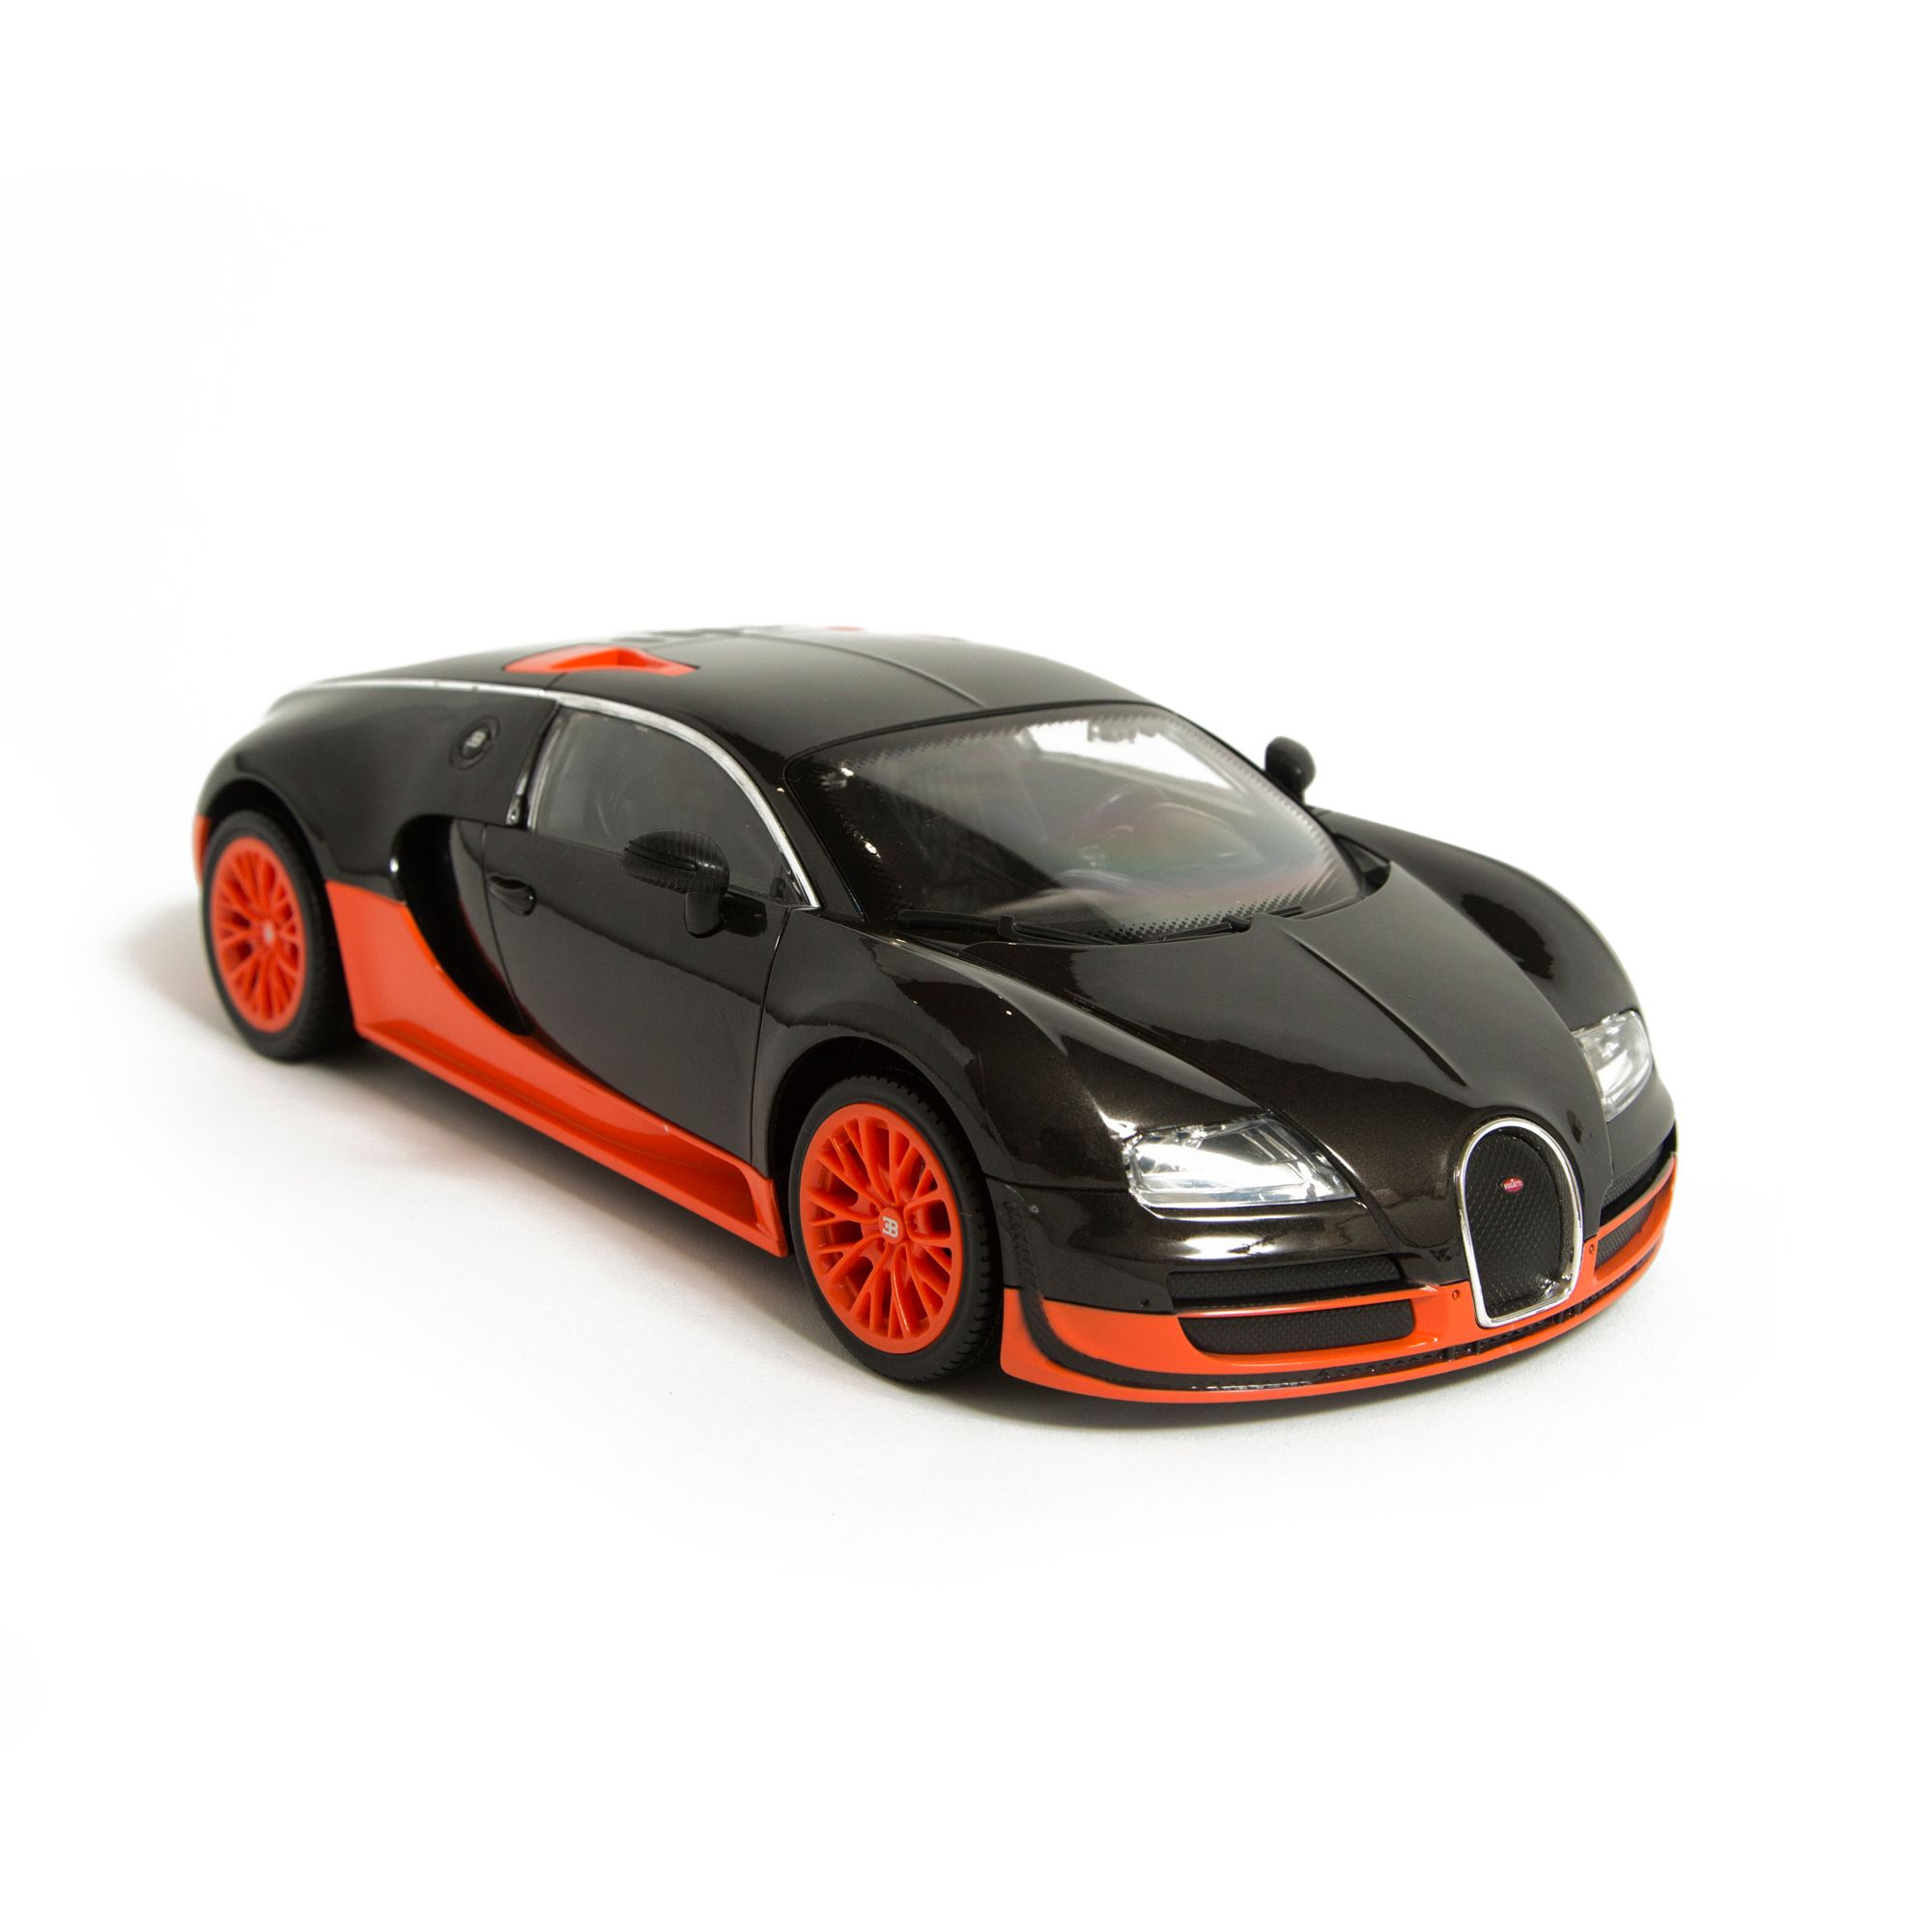 Image of Hamleys Orange Bugatti Veyron RC Car, Orange